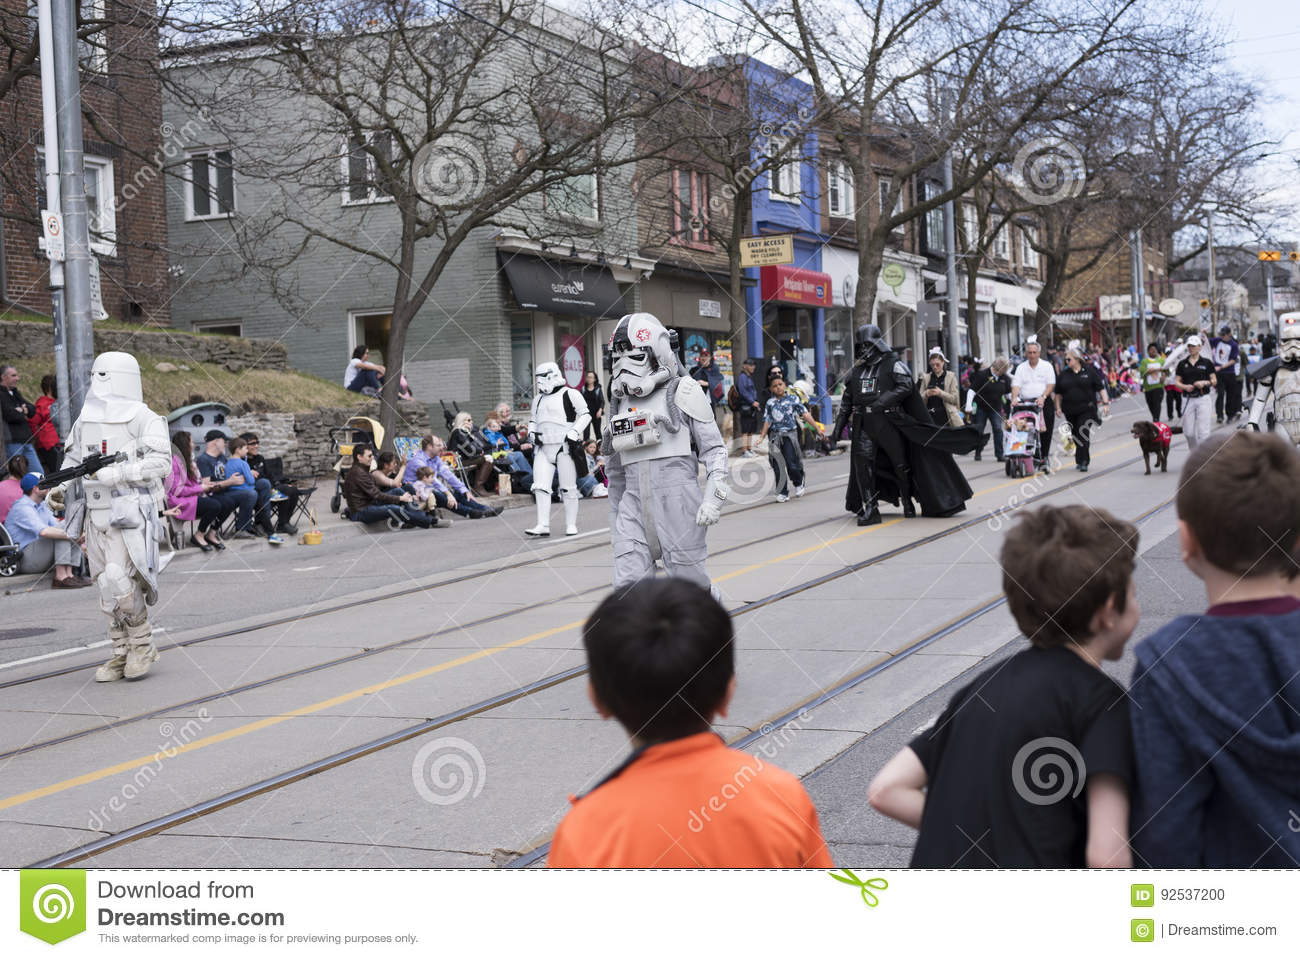 The Star Wars characters walk along the Queen St E Toronto during the Beaches Easter Parade 2017